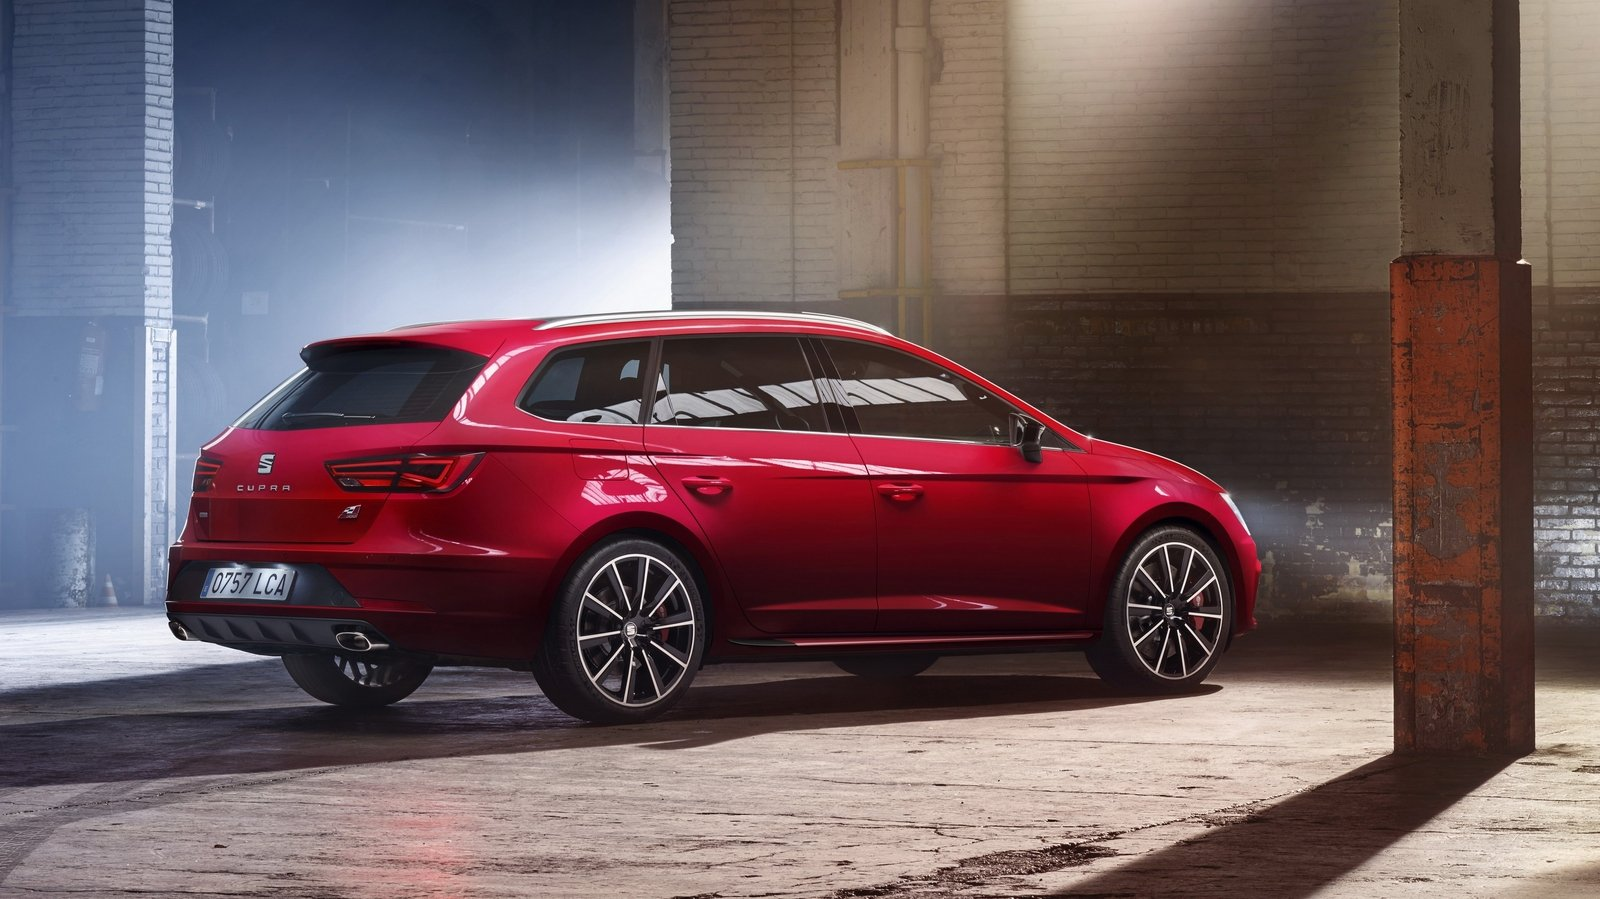 2017 seat leon cupra 300 review top speed. Black Bedroom Furniture Sets. Home Design Ideas